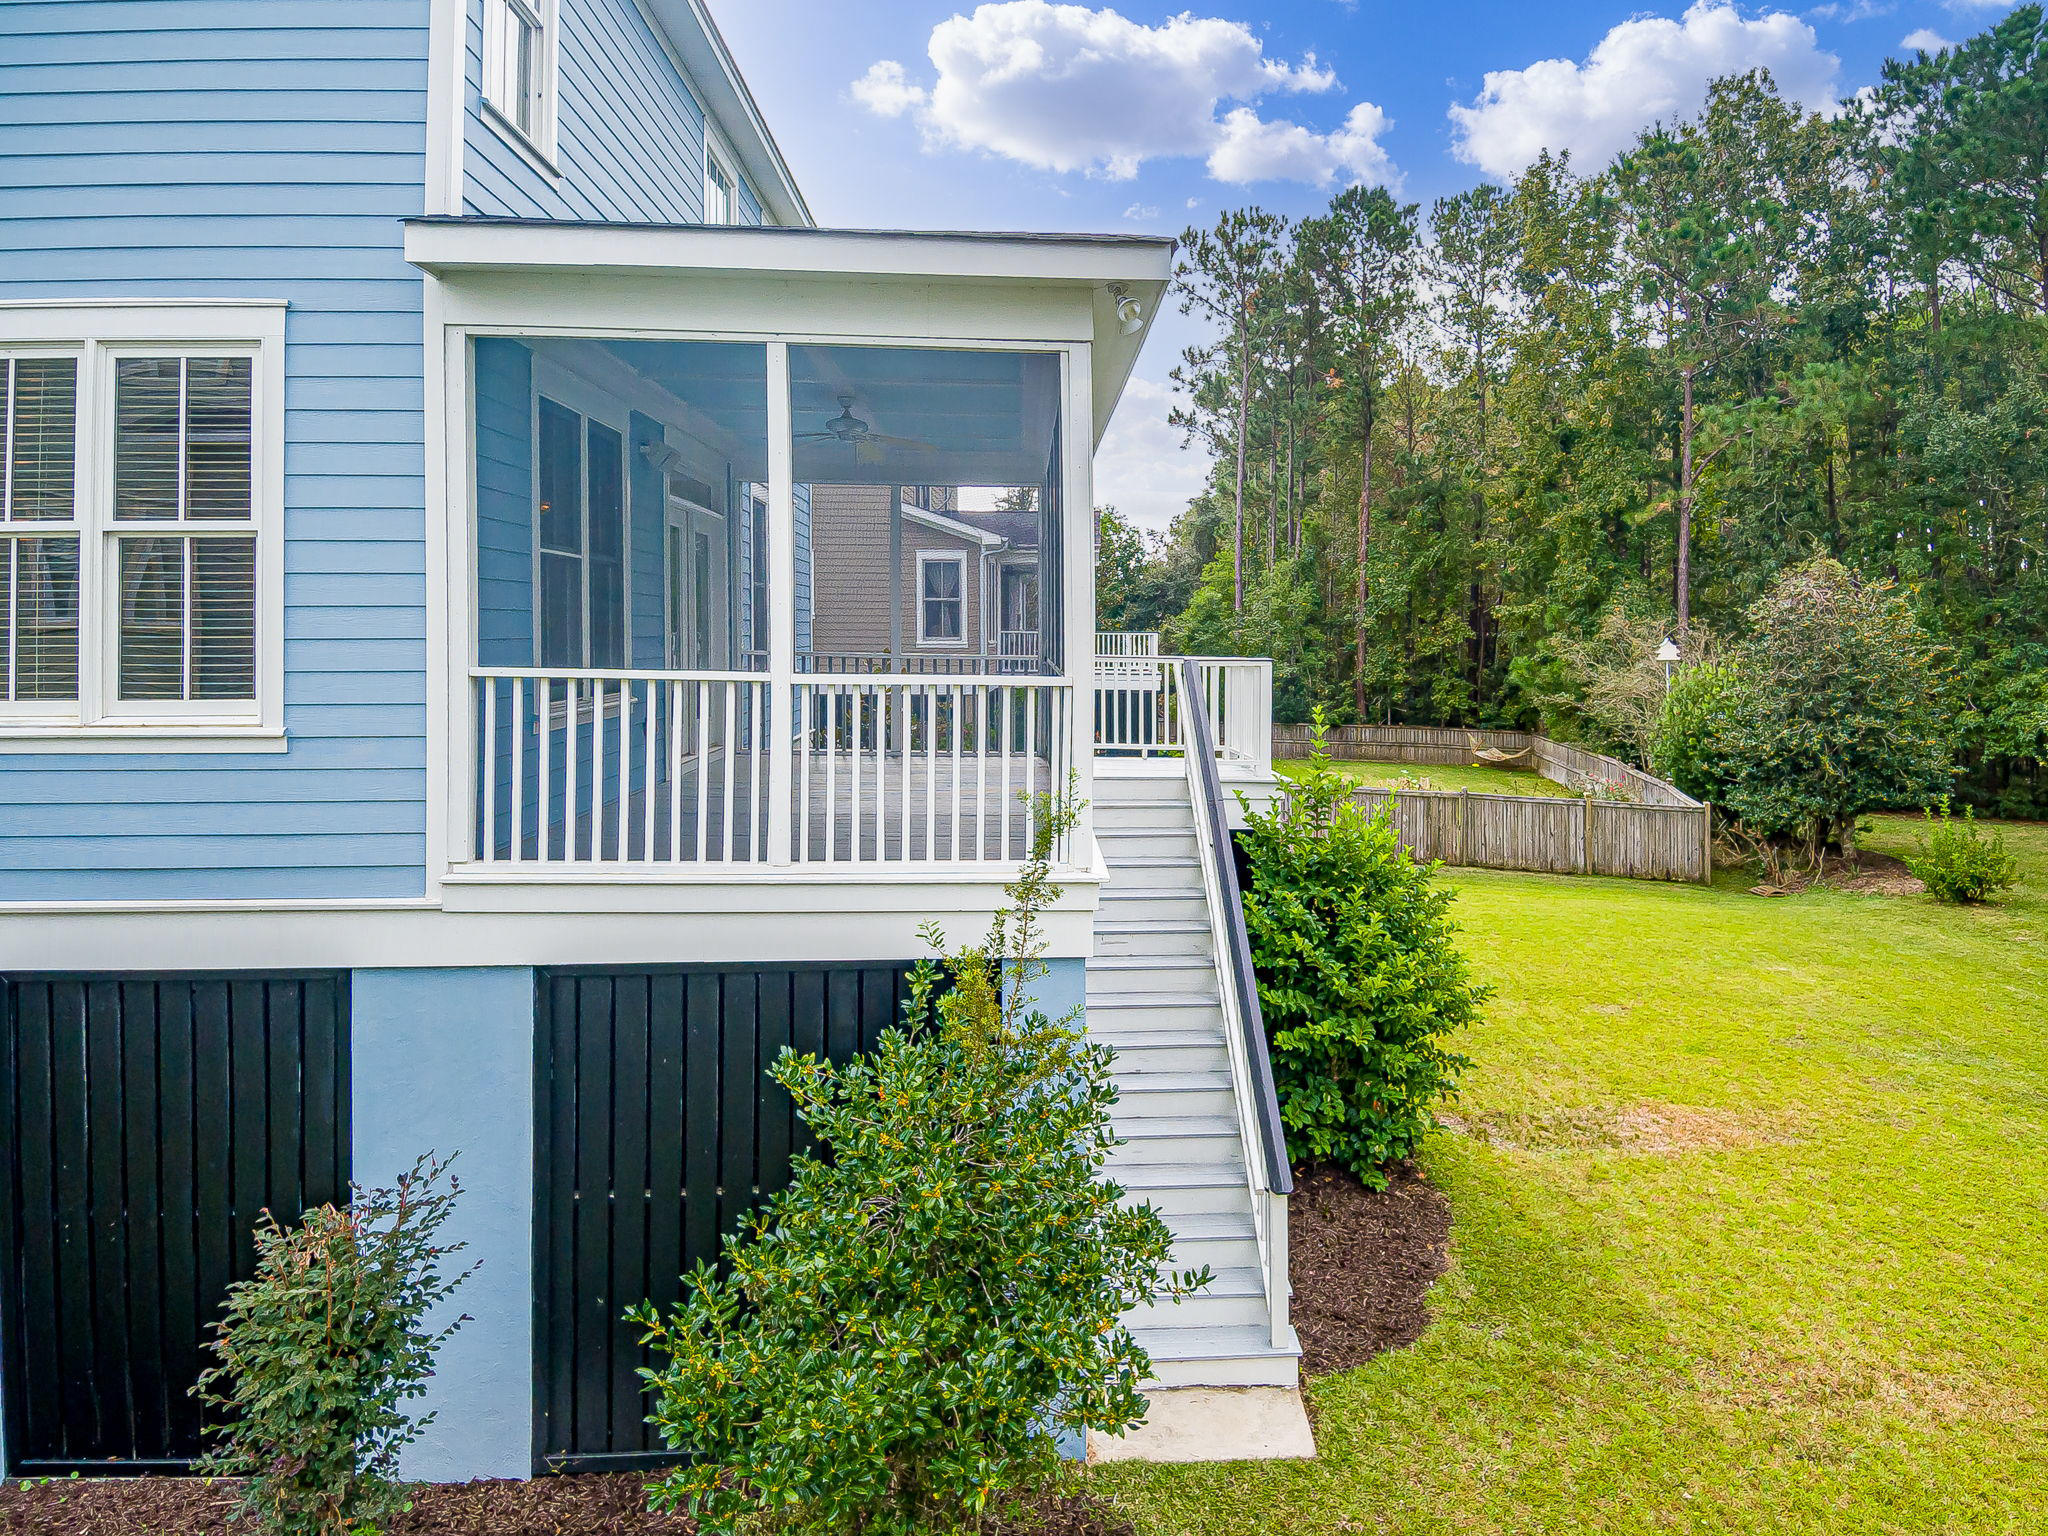 Planters Pointe Homes For Sale - 2628 Ringsted, Mount Pleasant, SC - 0